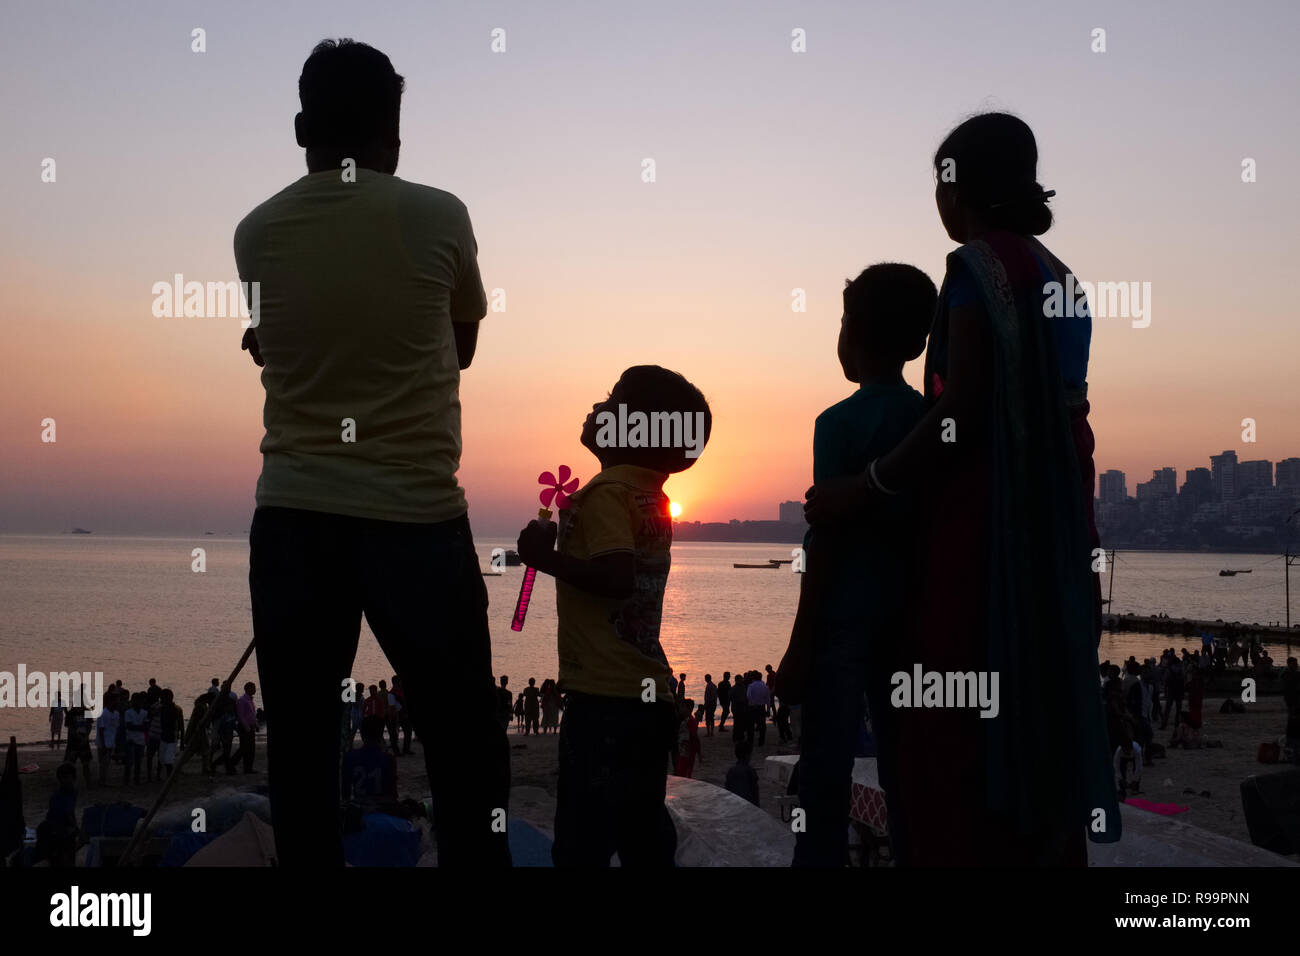 A nuclear family in Mumbai, India, including two children, enjoying the sunset at Marine Drive, a boulevard lining the Arabian Sea - Stock Image